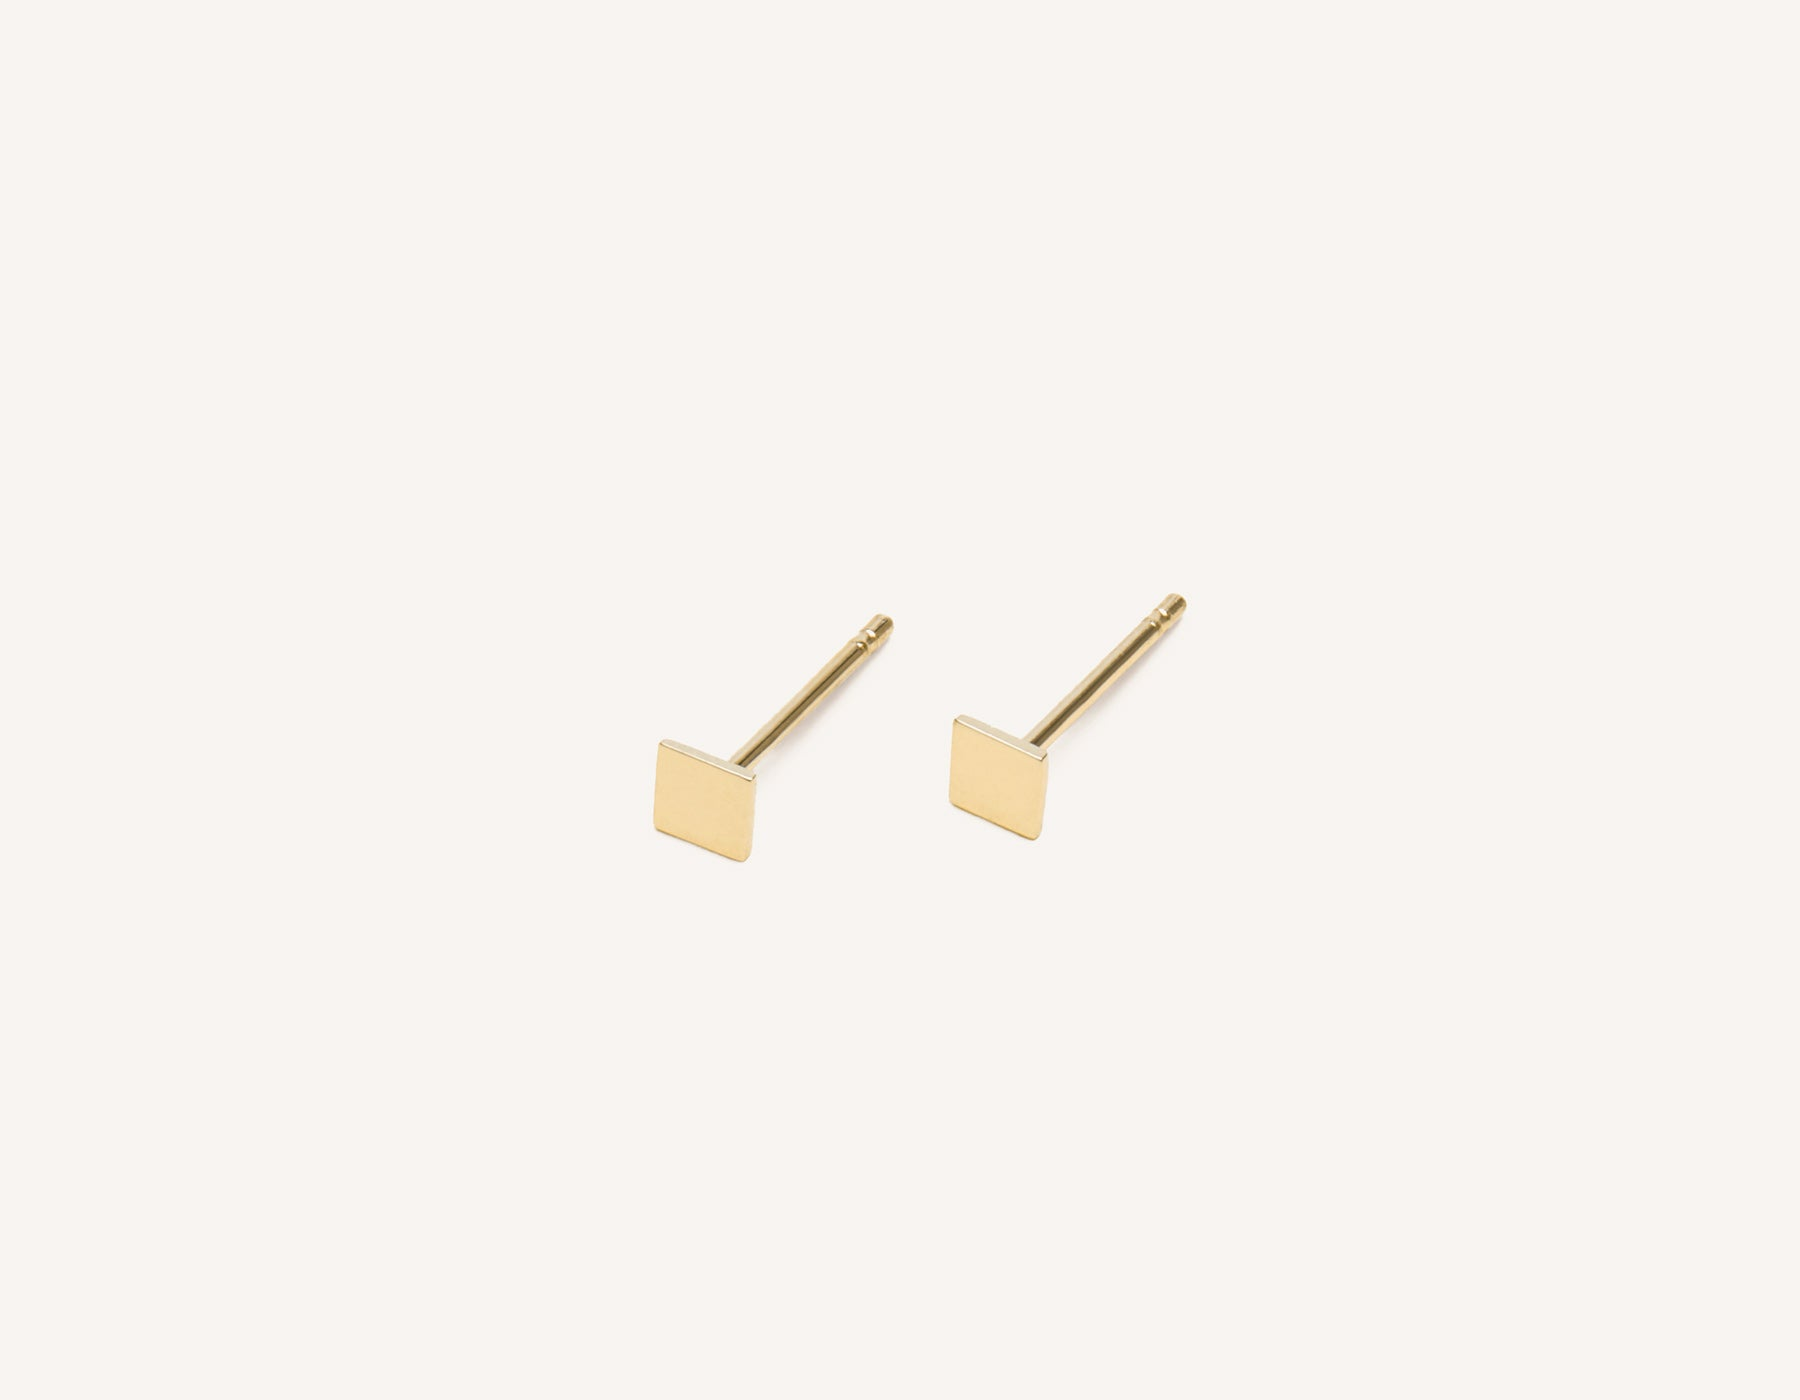 Simple classic Square Stud earrings 14k solid gold Vrai & Oro minimalist jewelry, 14K Yellow Gold